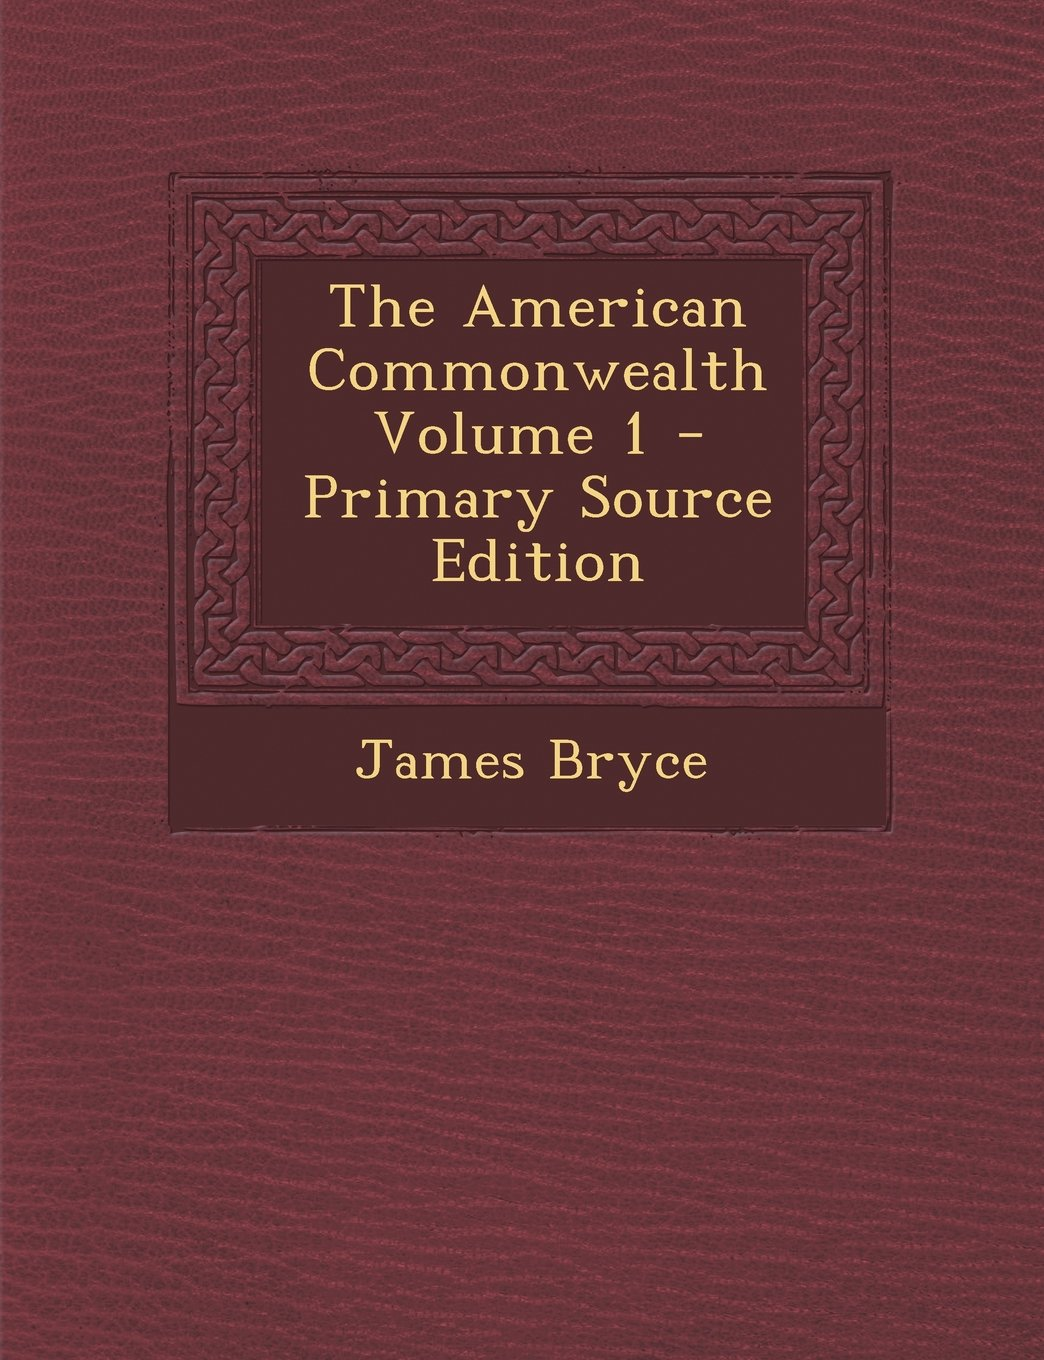 The American Commonwealth Volume 1 ebook